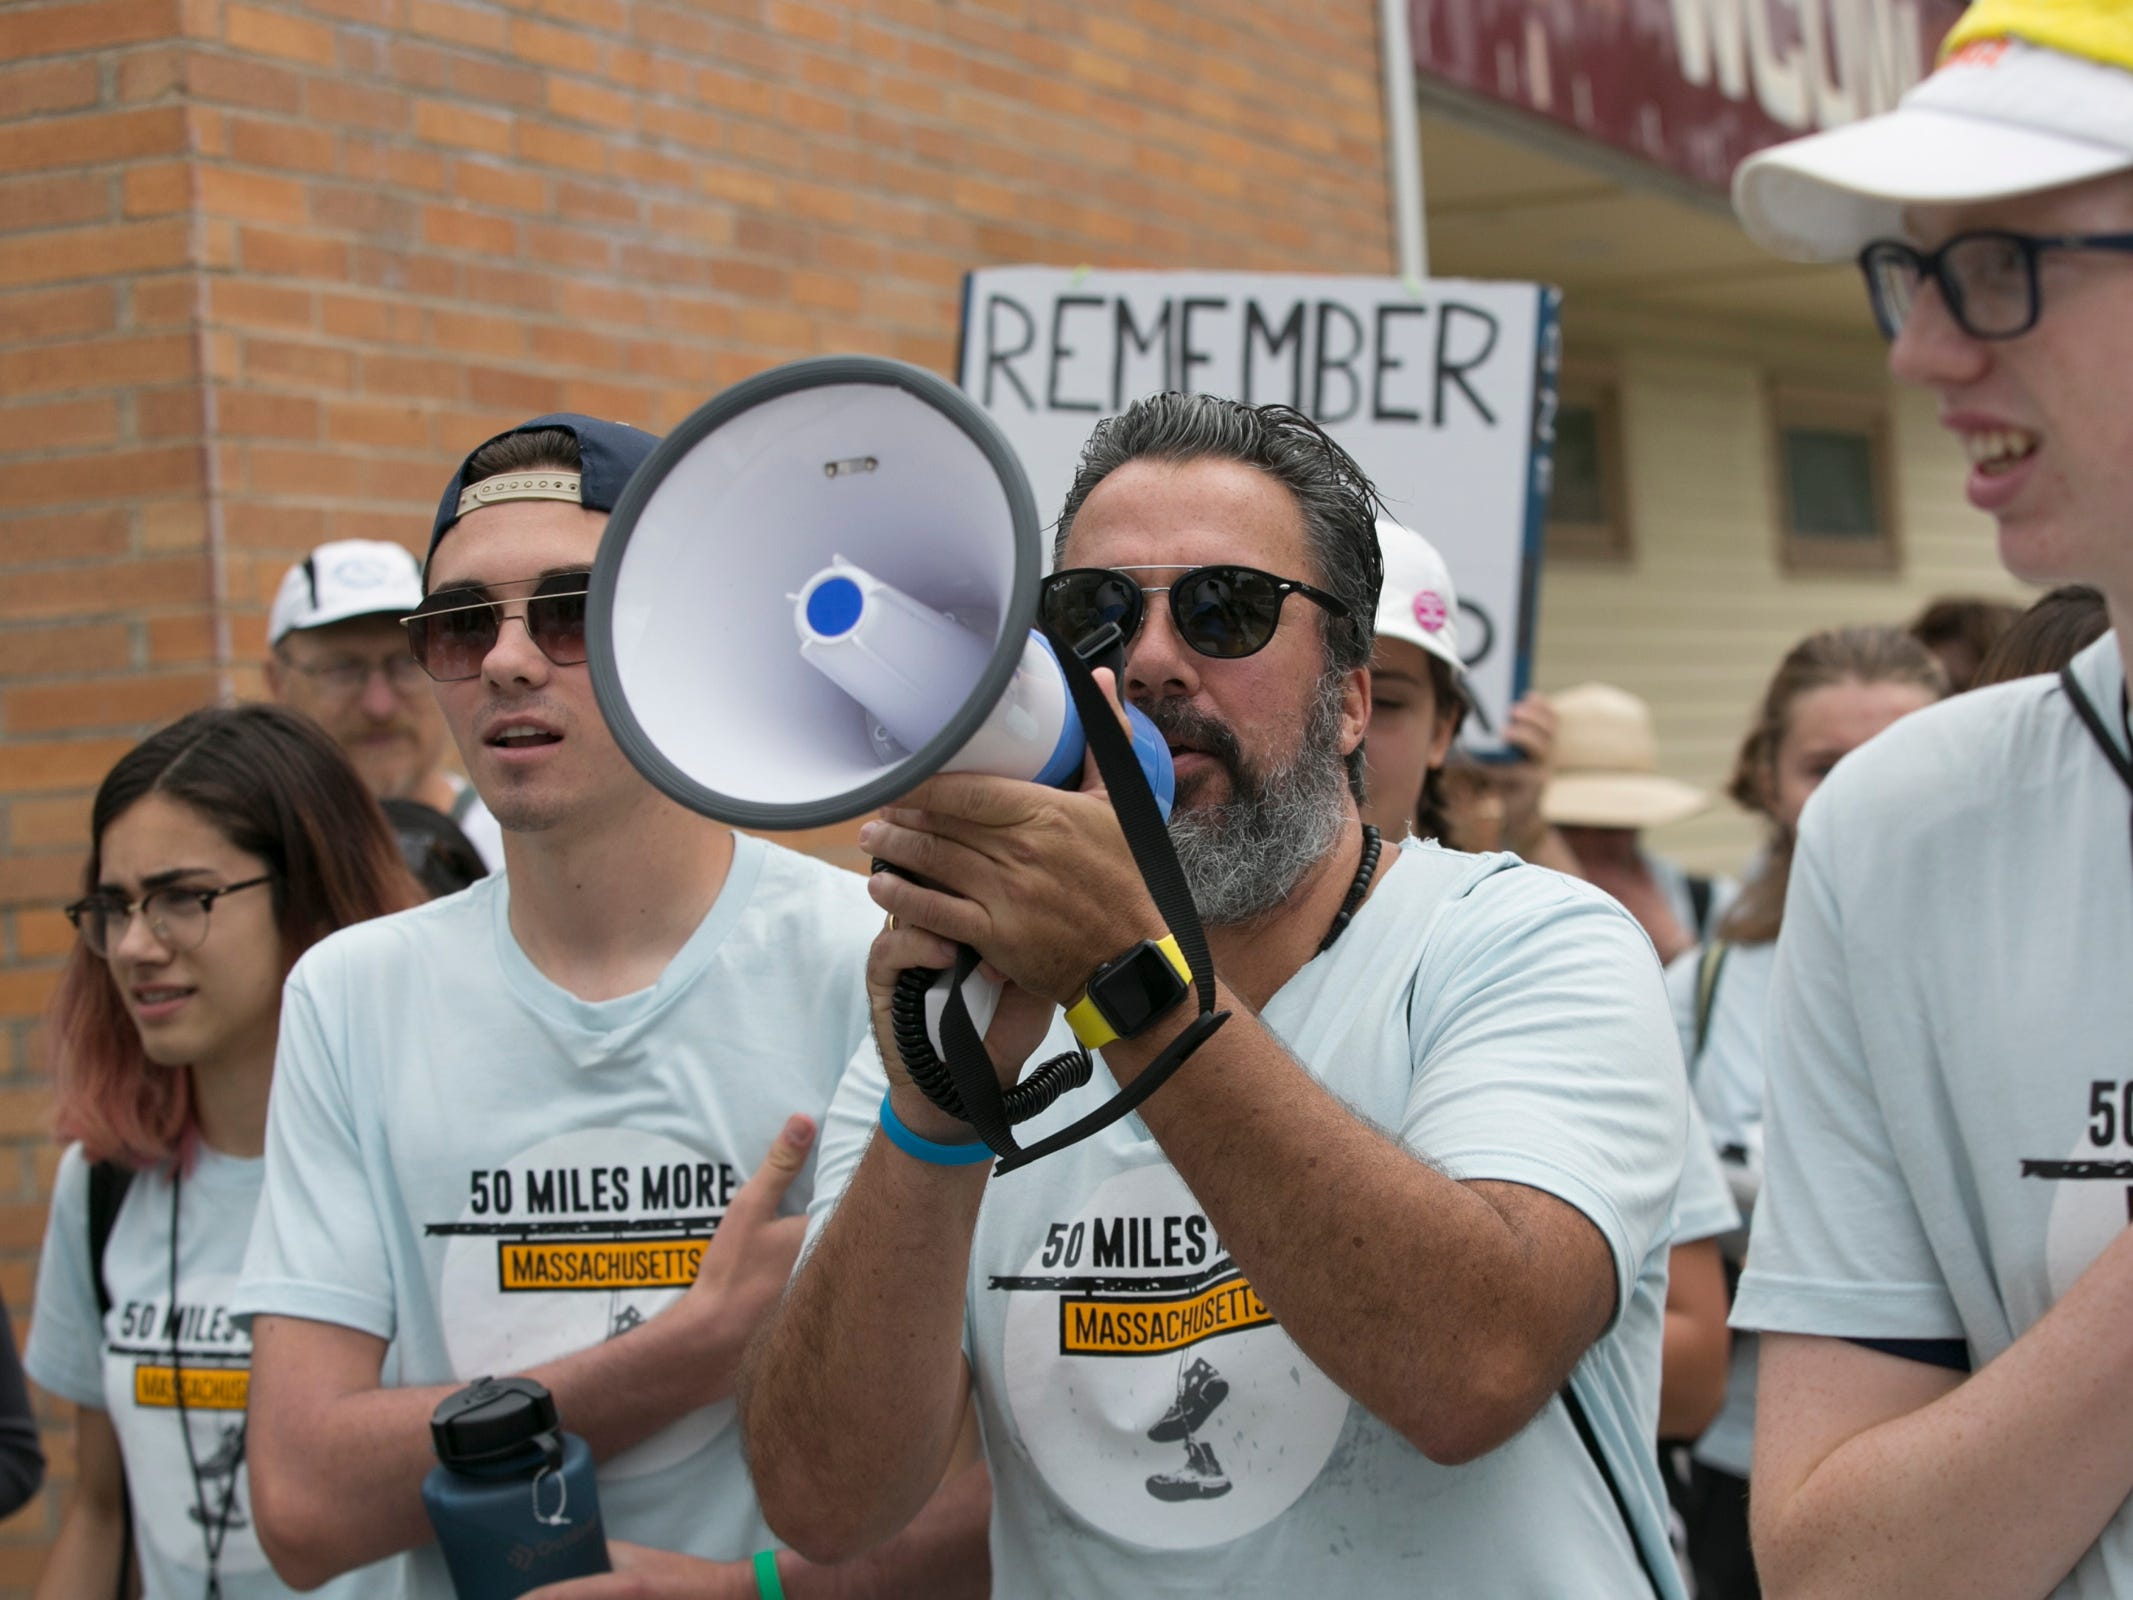 David Hogg, second from left, 18, a survivor of the Valentine's Day 2018 Parkland shooting and a resident of Parkland, Florida, is joined by Manuel Oliver. center, 50, father of murdered Parkland shooting victim Joaiquim Oliver, at a youth march to protest gun violence, in Worcester, Mass. on Aug. 23, 2018. More than 50 youth activists prepared to march 50 miles to the Smith & Wesson's headquarters in Springfield, Mass to stress their call on the gun manufacturer to stop manufacturing all weapons outlawed under Massachusetts' 2004 Assault Weapons Ban and to make a five million US dollars donation towards researching gun violence.